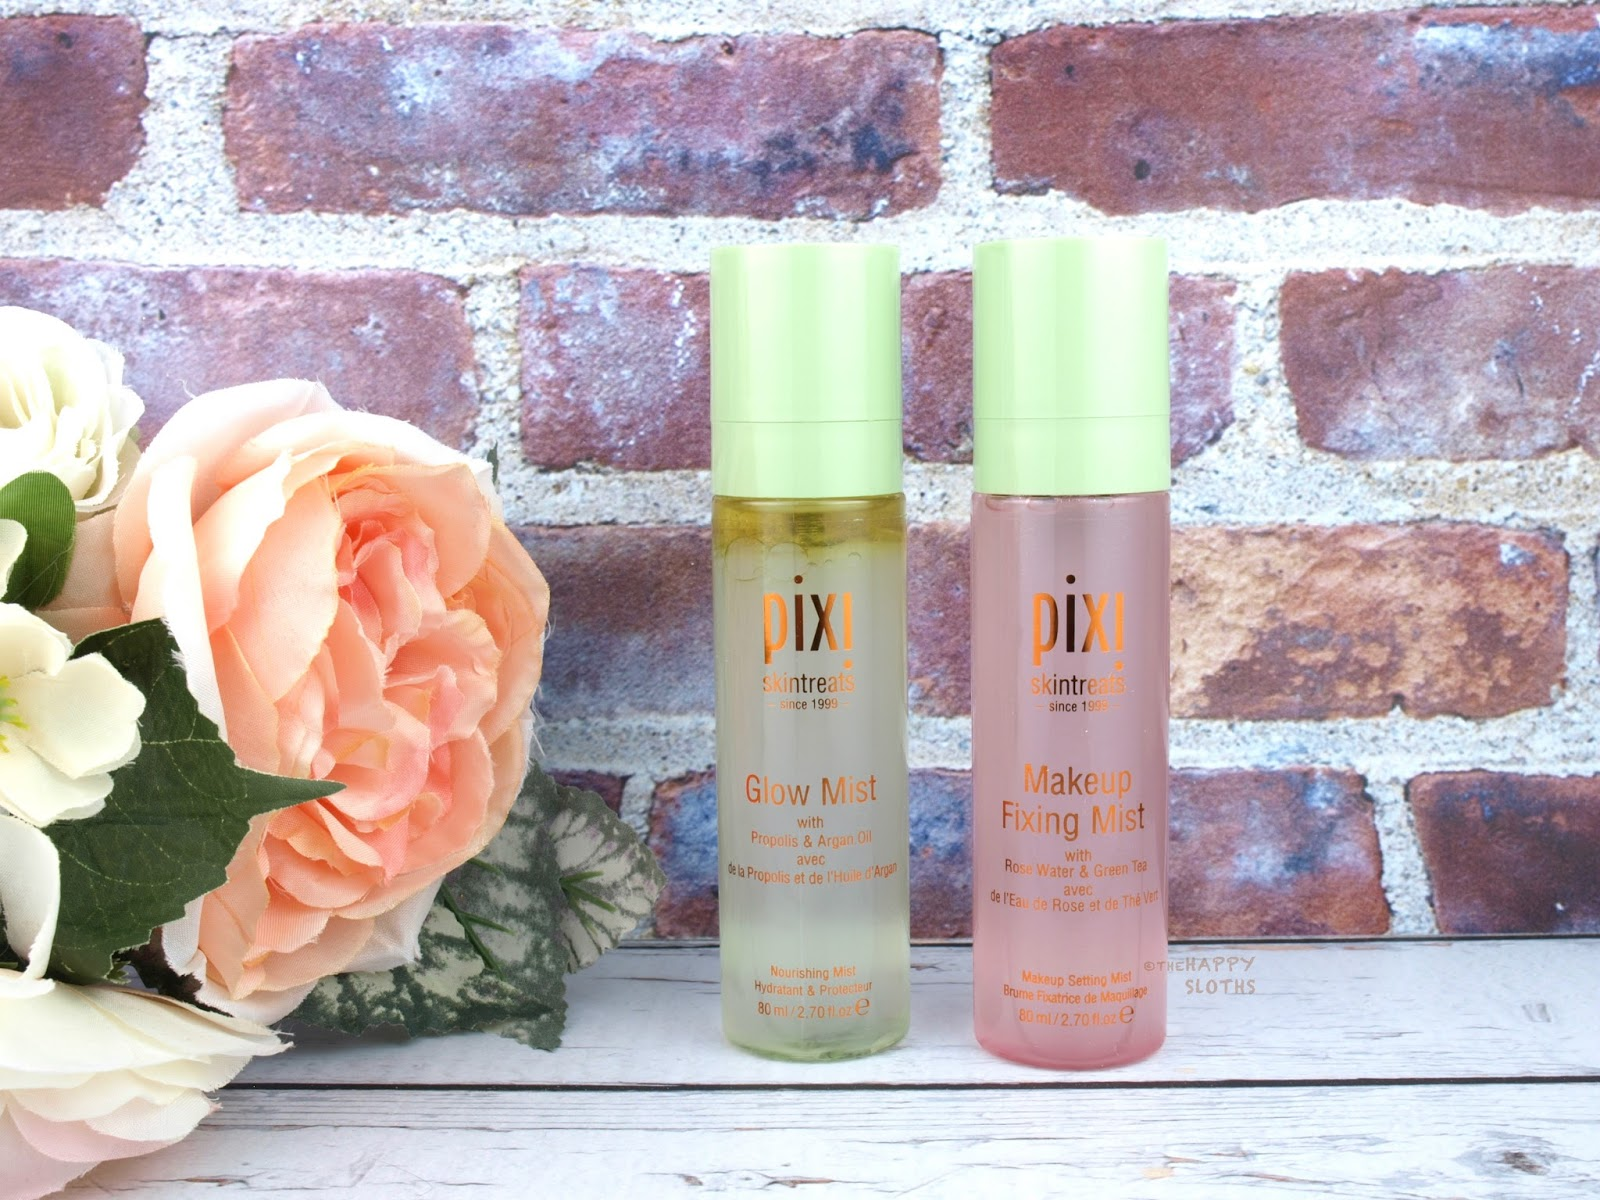 Pixi Skintreats | Makeup Fixing Mist & Glow Mist: Review